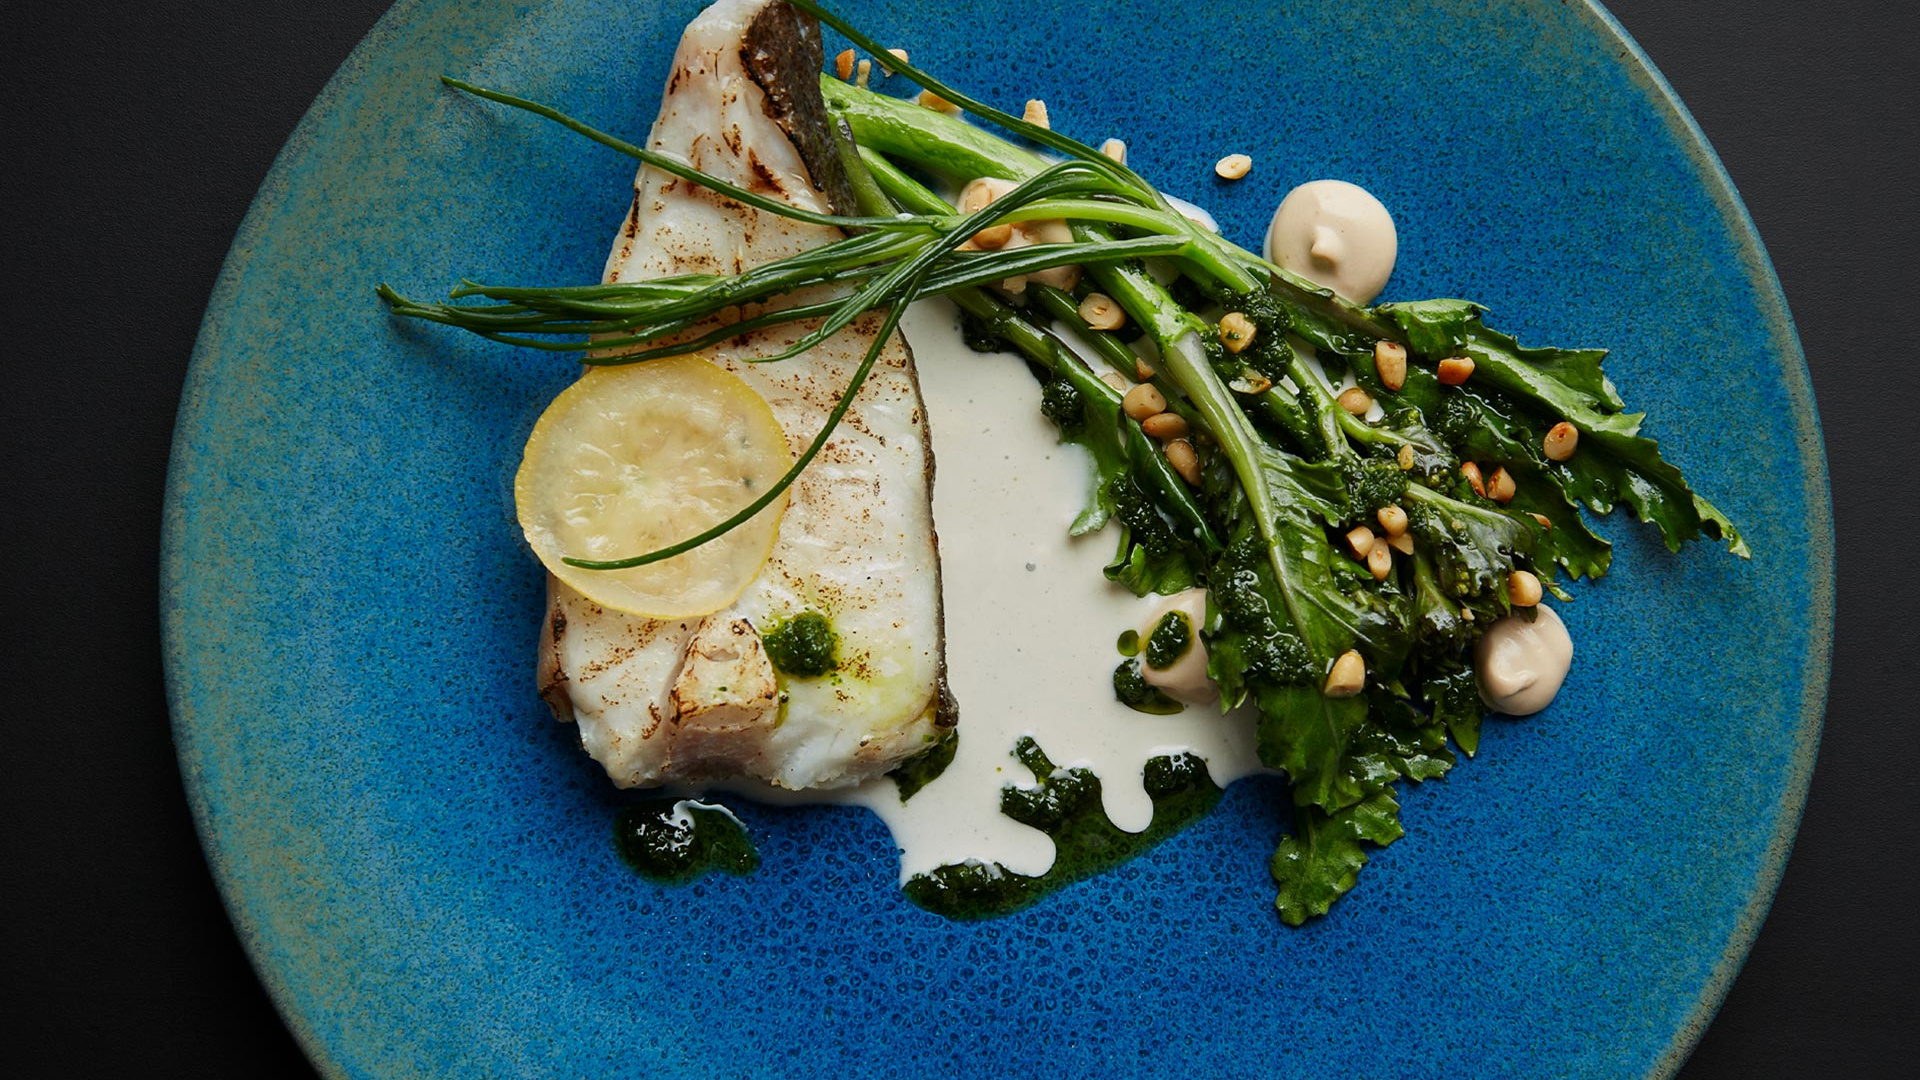 Market fish with anchovies at Neo Bistro. Photograph by Joakim Blockstrom